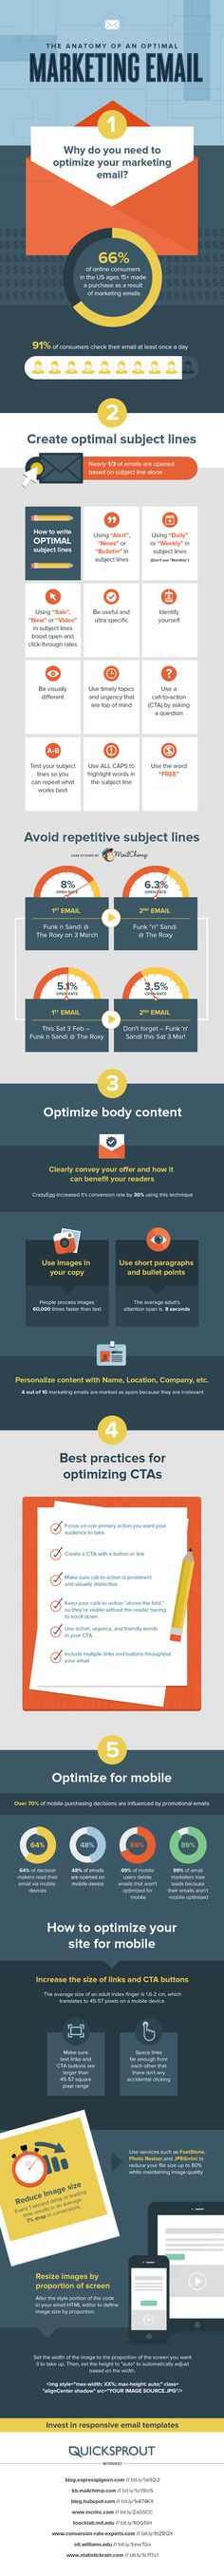 [INFOGRAPHIC] The Ultimate E-mail Optimization Infographic: Subject lines; Content optimization; CTAs; Mobile; Details.